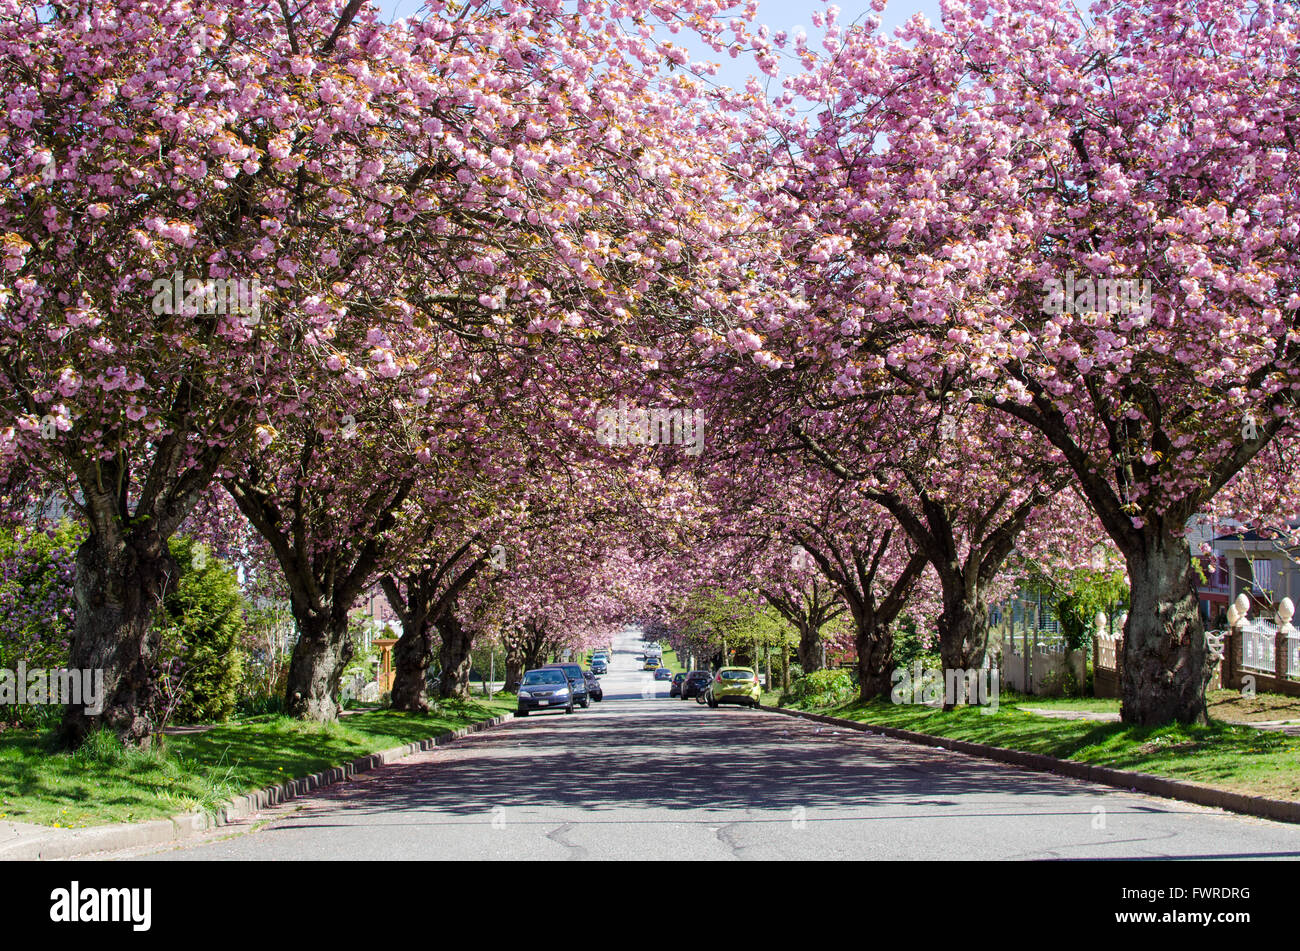 Canada Cherry Blossom High Resolution Stock Photography And Images Alamy